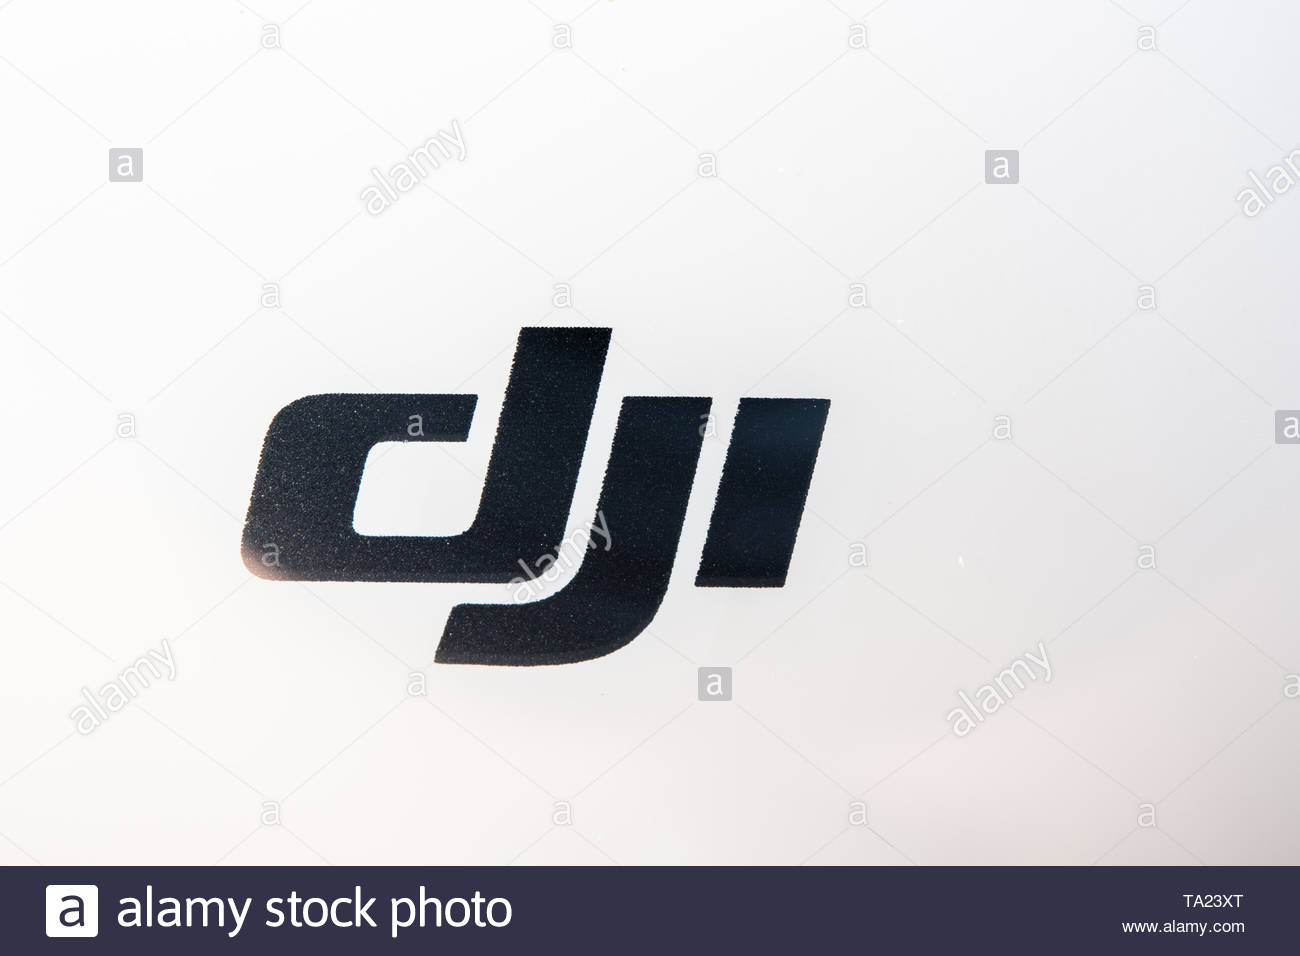 Sign logo of a DJI Phantom drone over the white plastic of the air vehicle. The branding design is illuminated with natural light Stock Photo